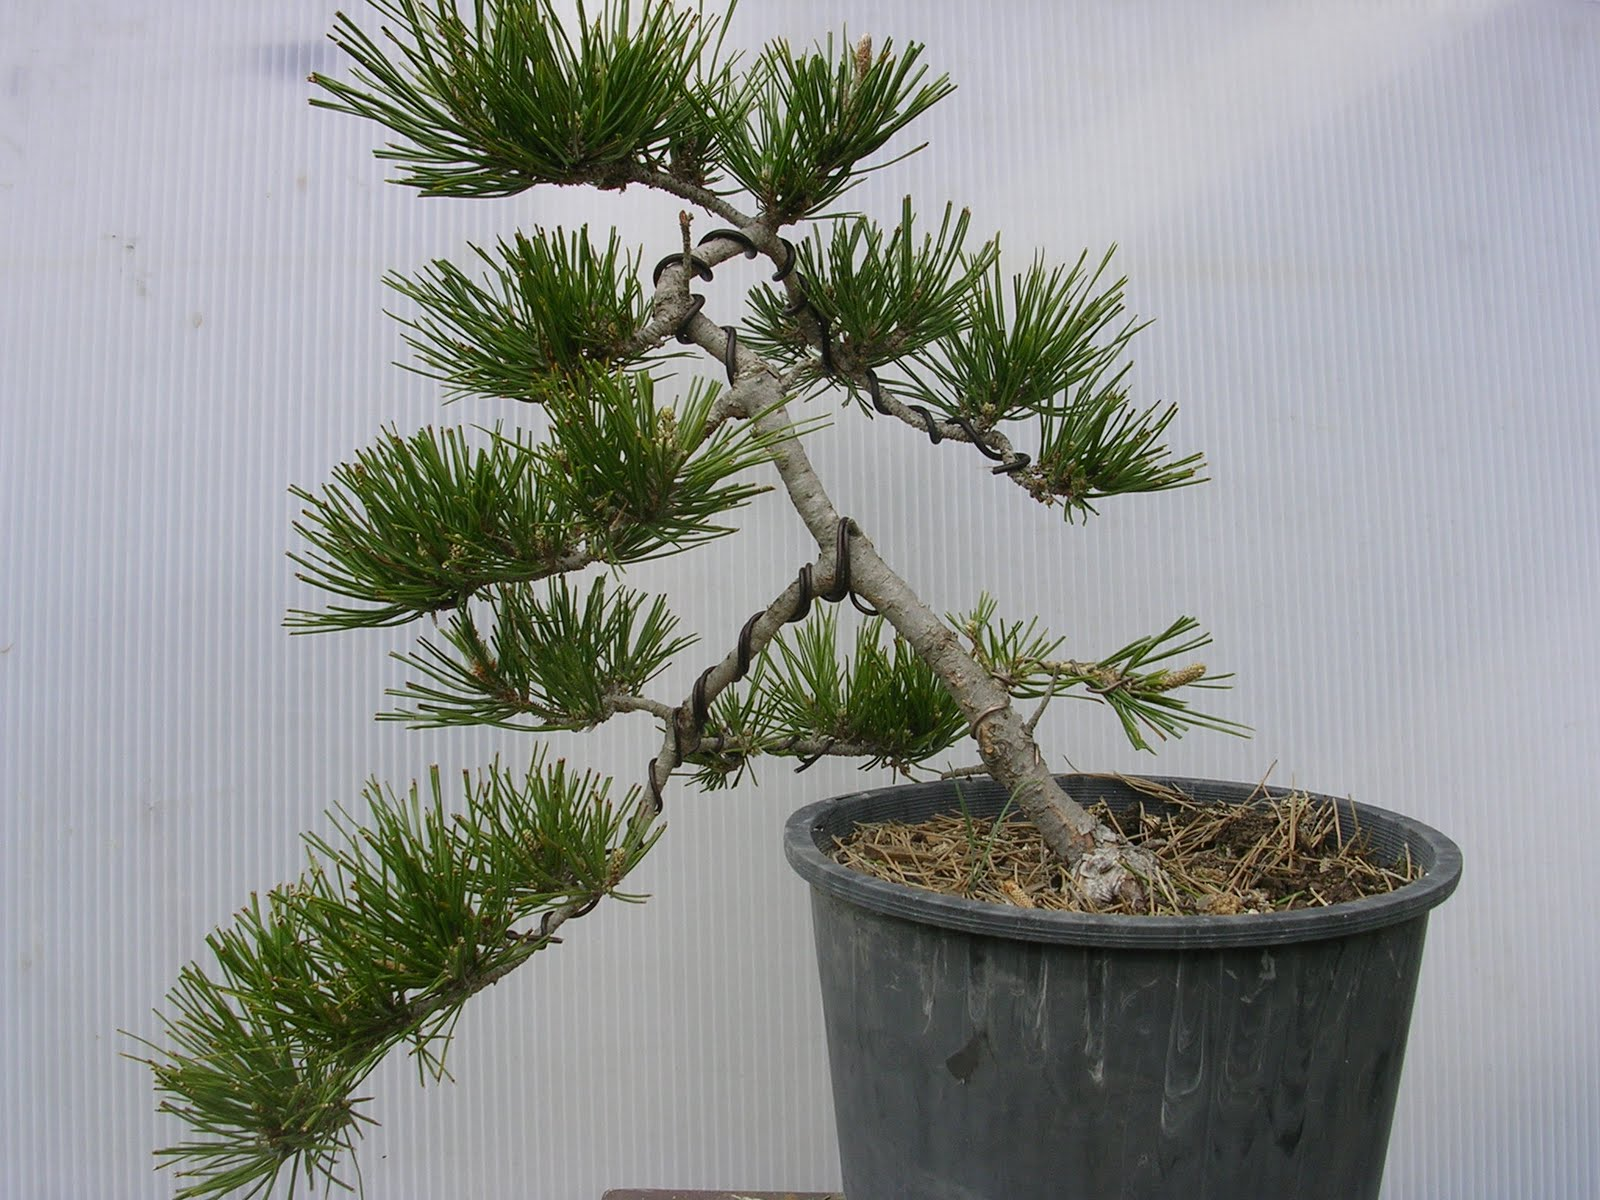 Instant Bonsai Wiring Your Tree Japanese Black Pine Have A Small Window Of Opportunity When It Comes To Repotting That Involves Root Pruning This Is In September First Month